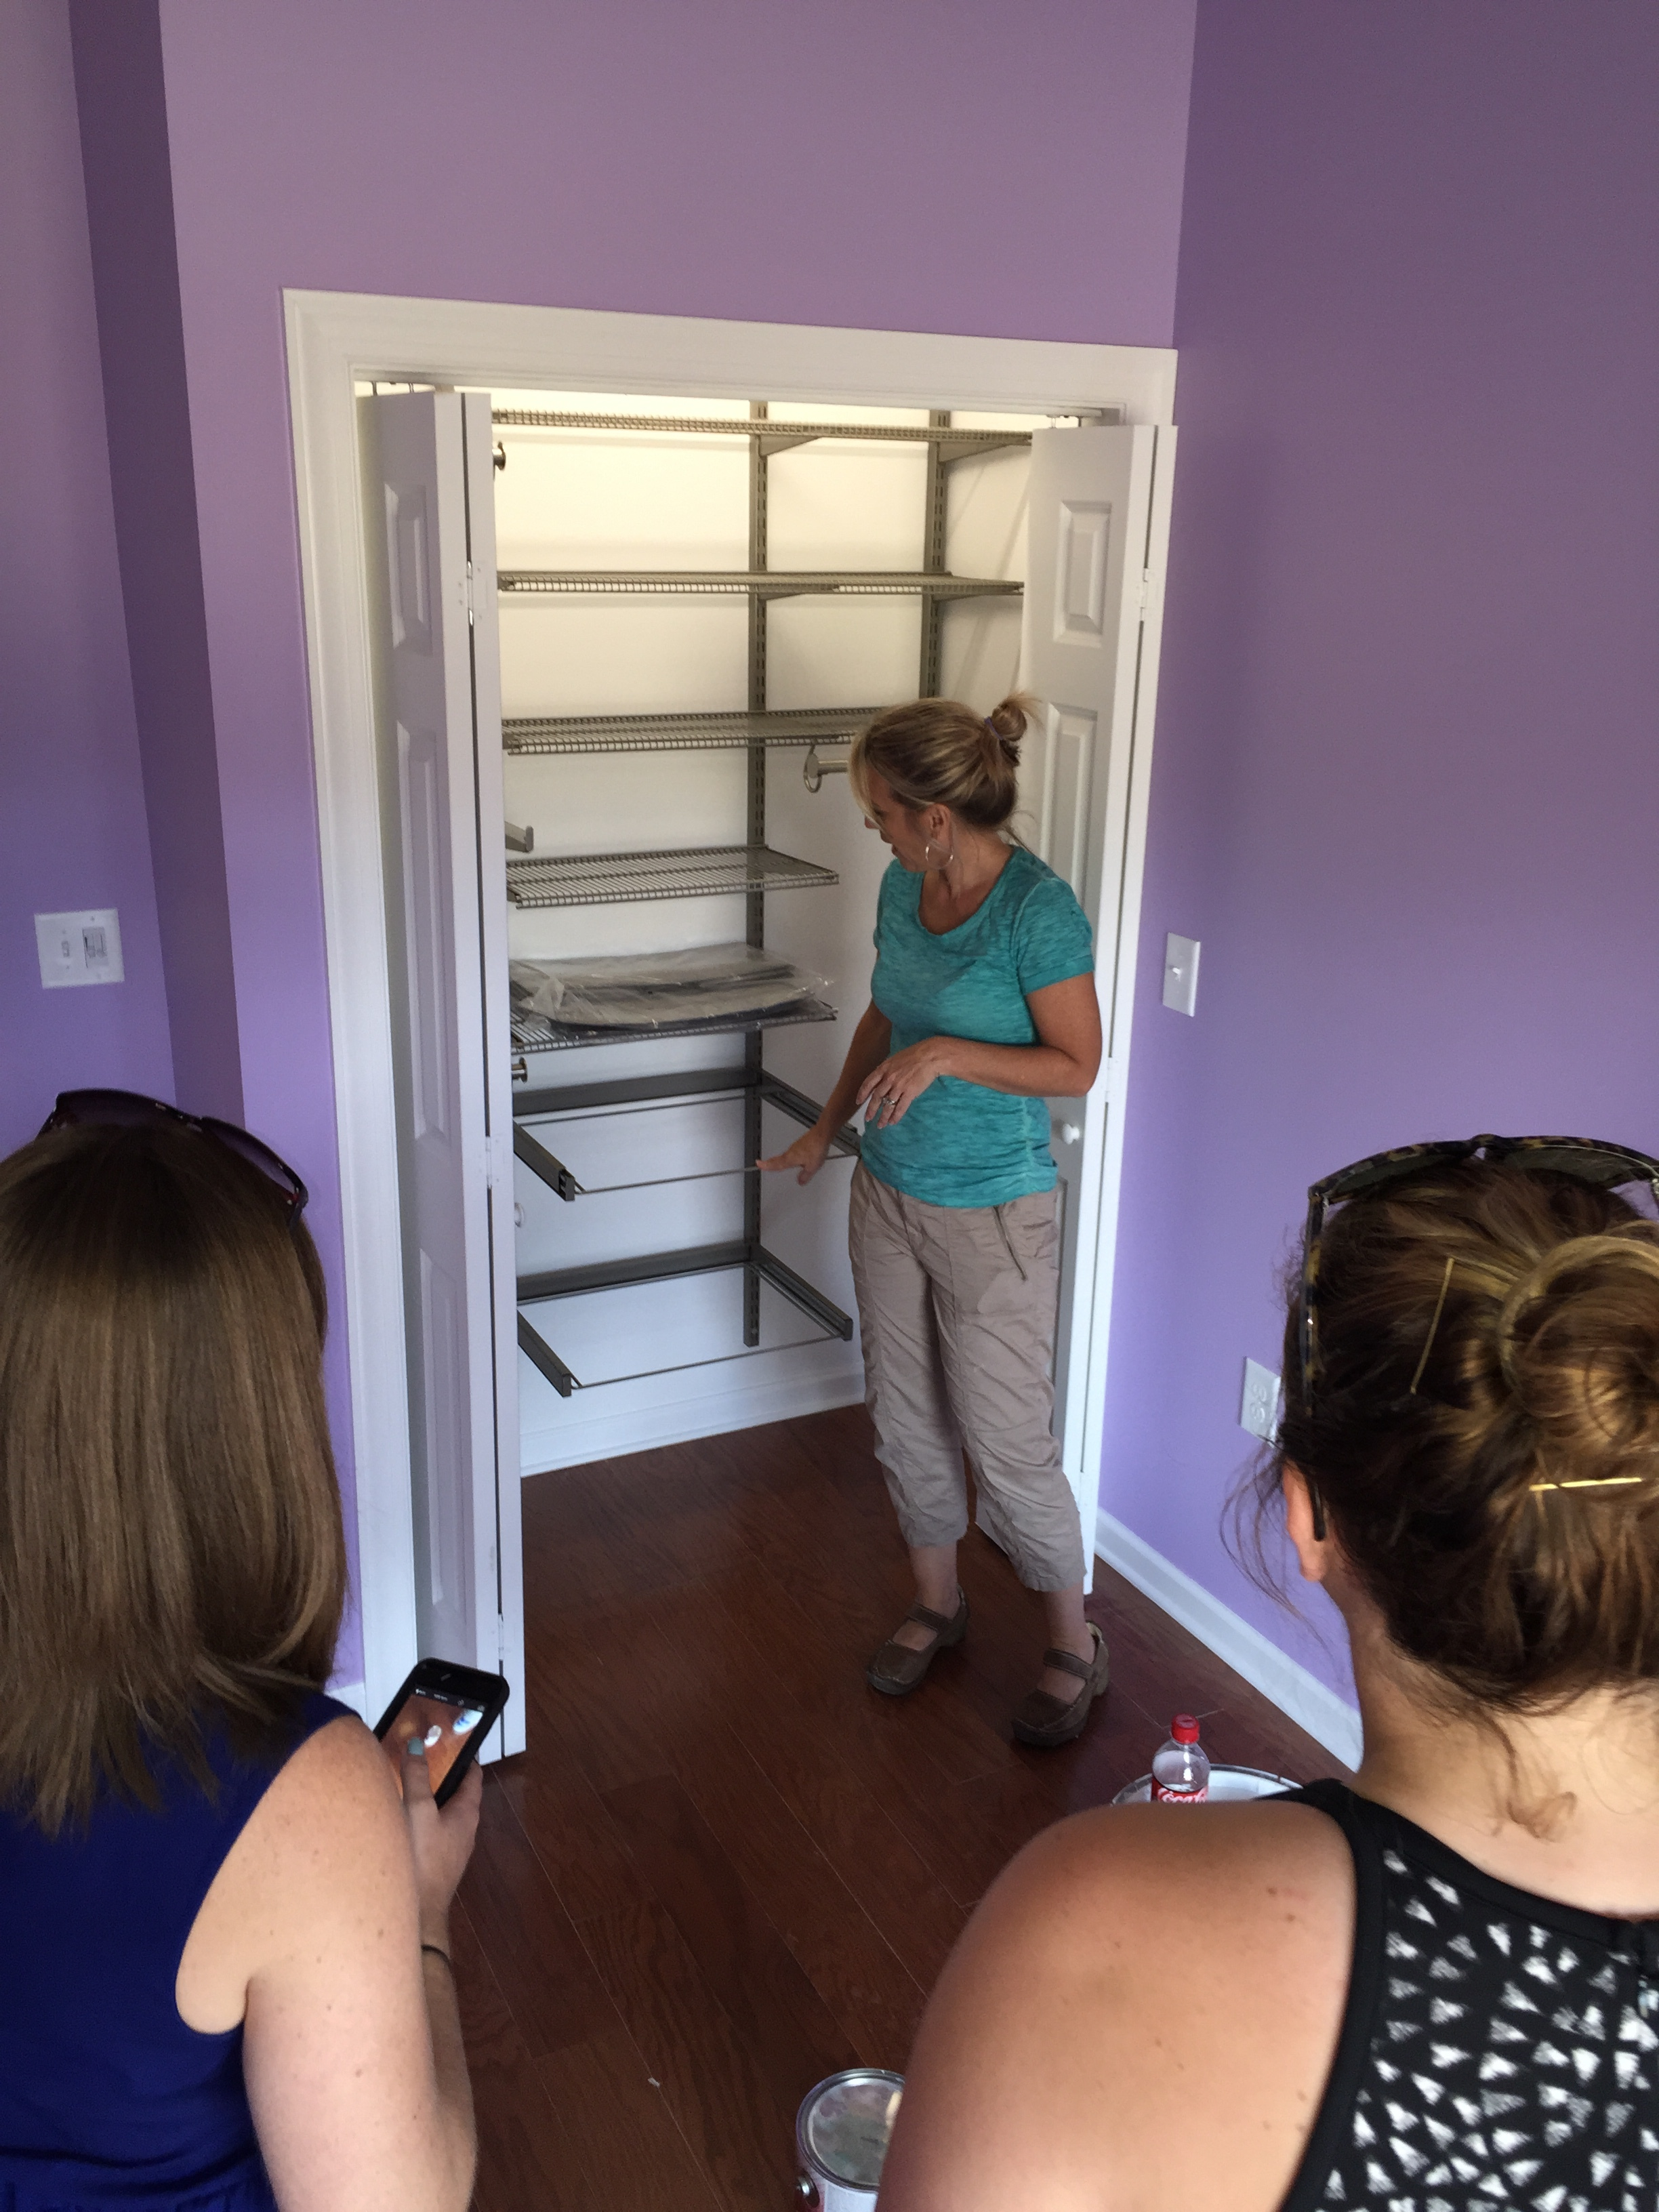 Kim McBrayer, owner of spacecadetsorganizing.com, demonstrating one of many of the closet systems she donated to the hfotusa.org in Calera, AL.